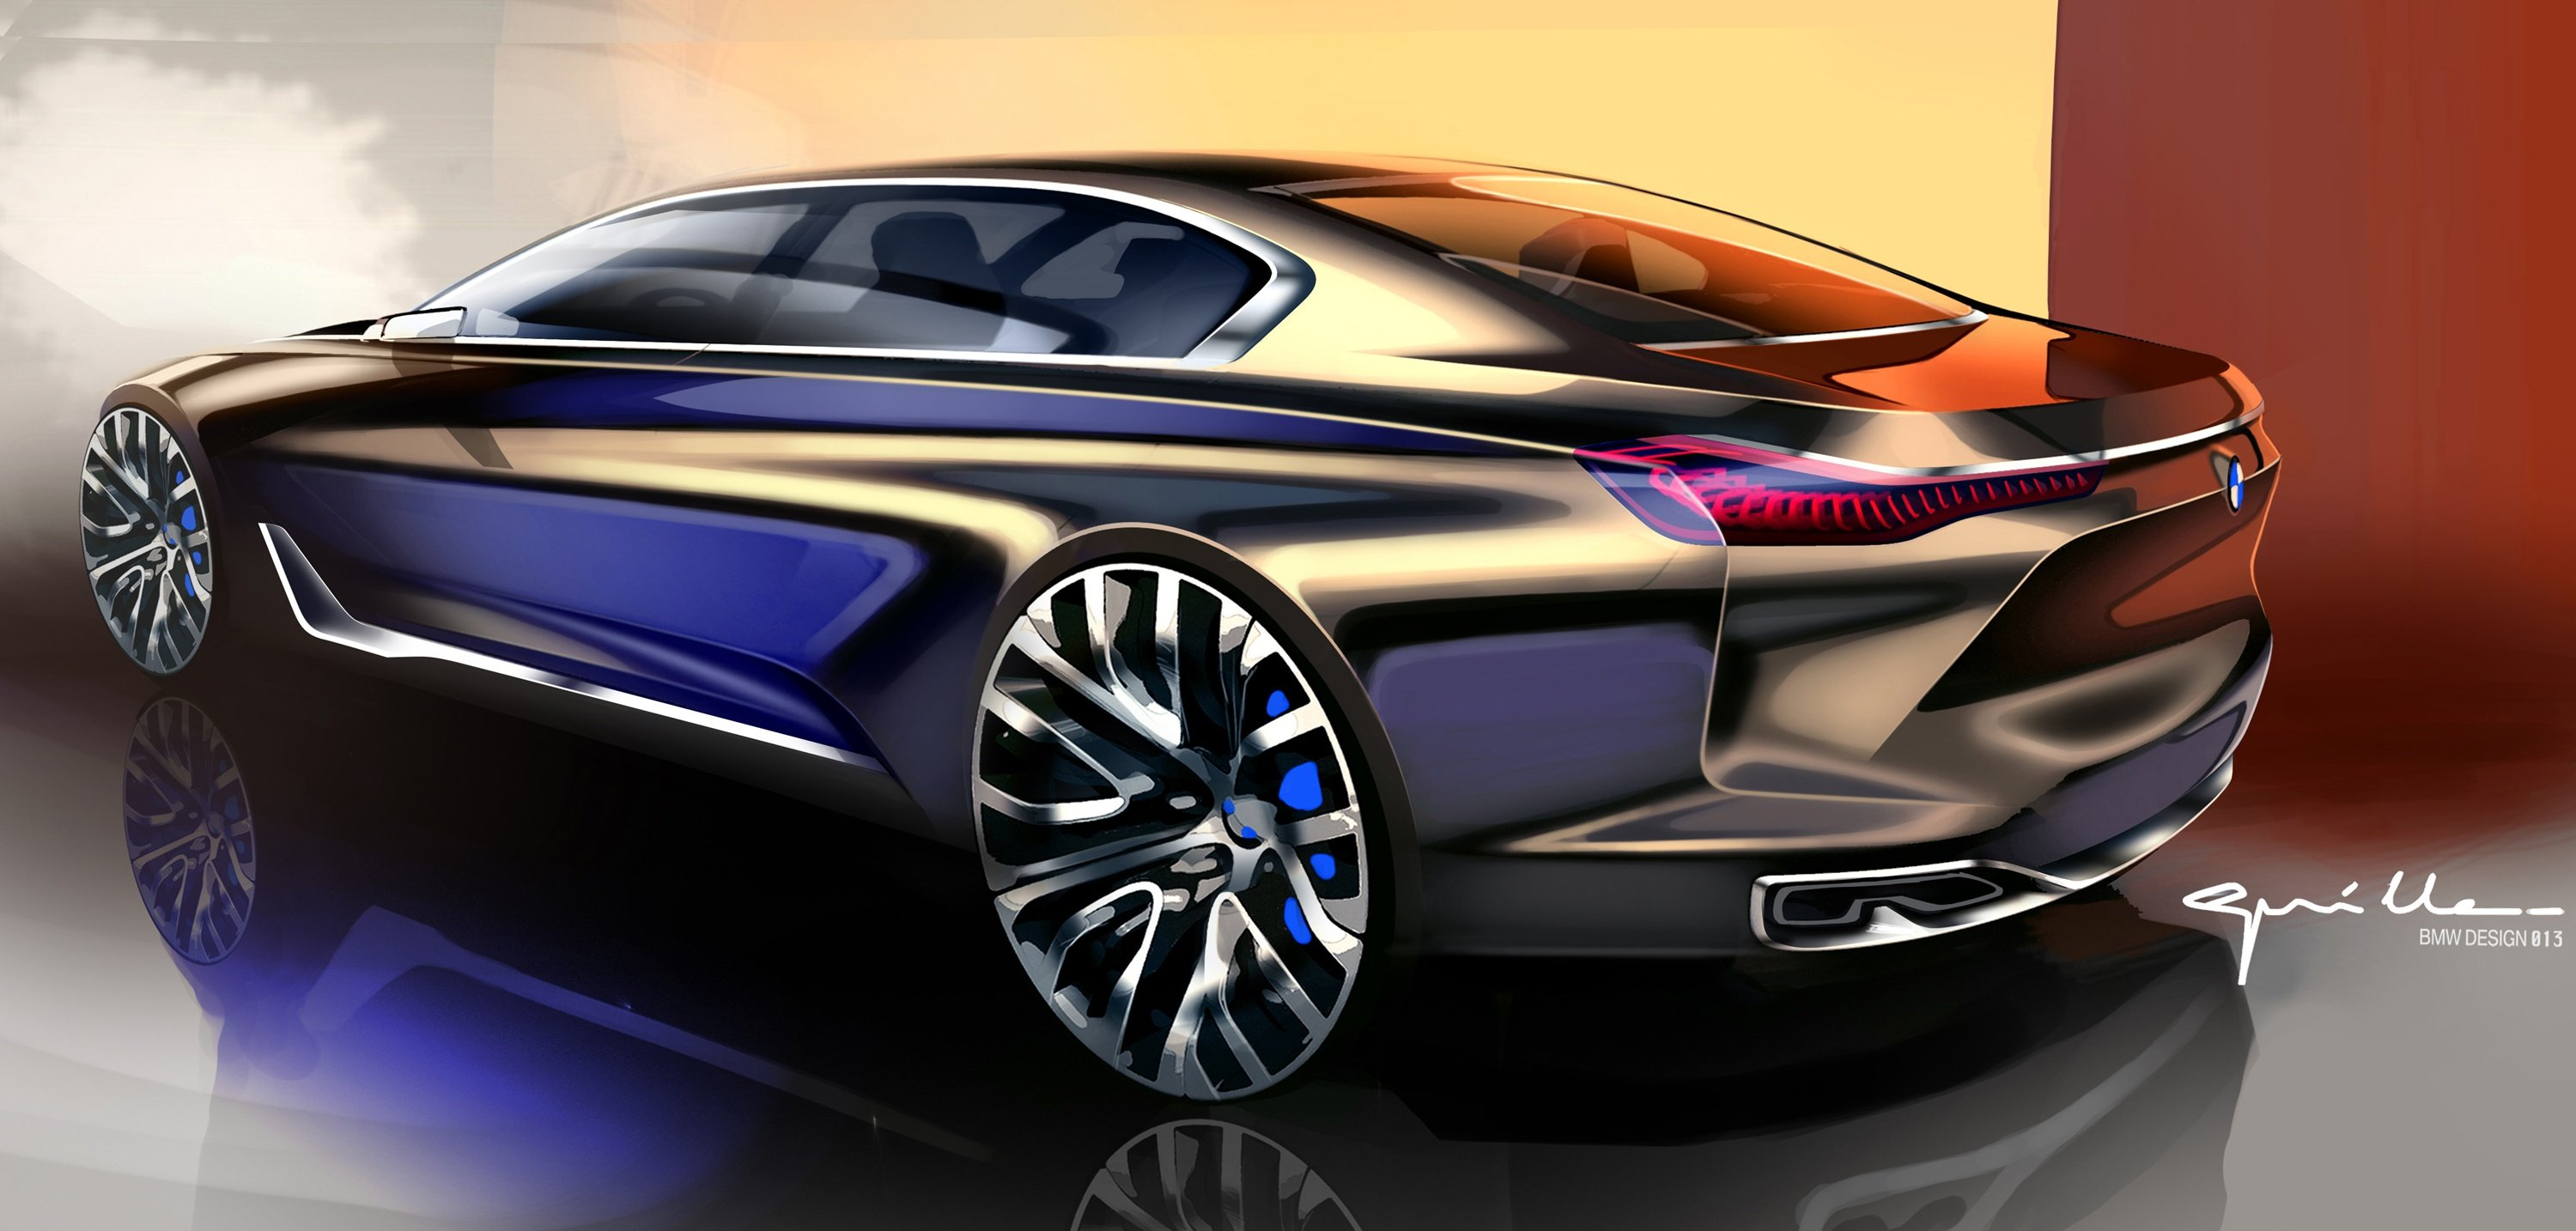 BMW_Vision_Future_Luxury_big_3000x1434